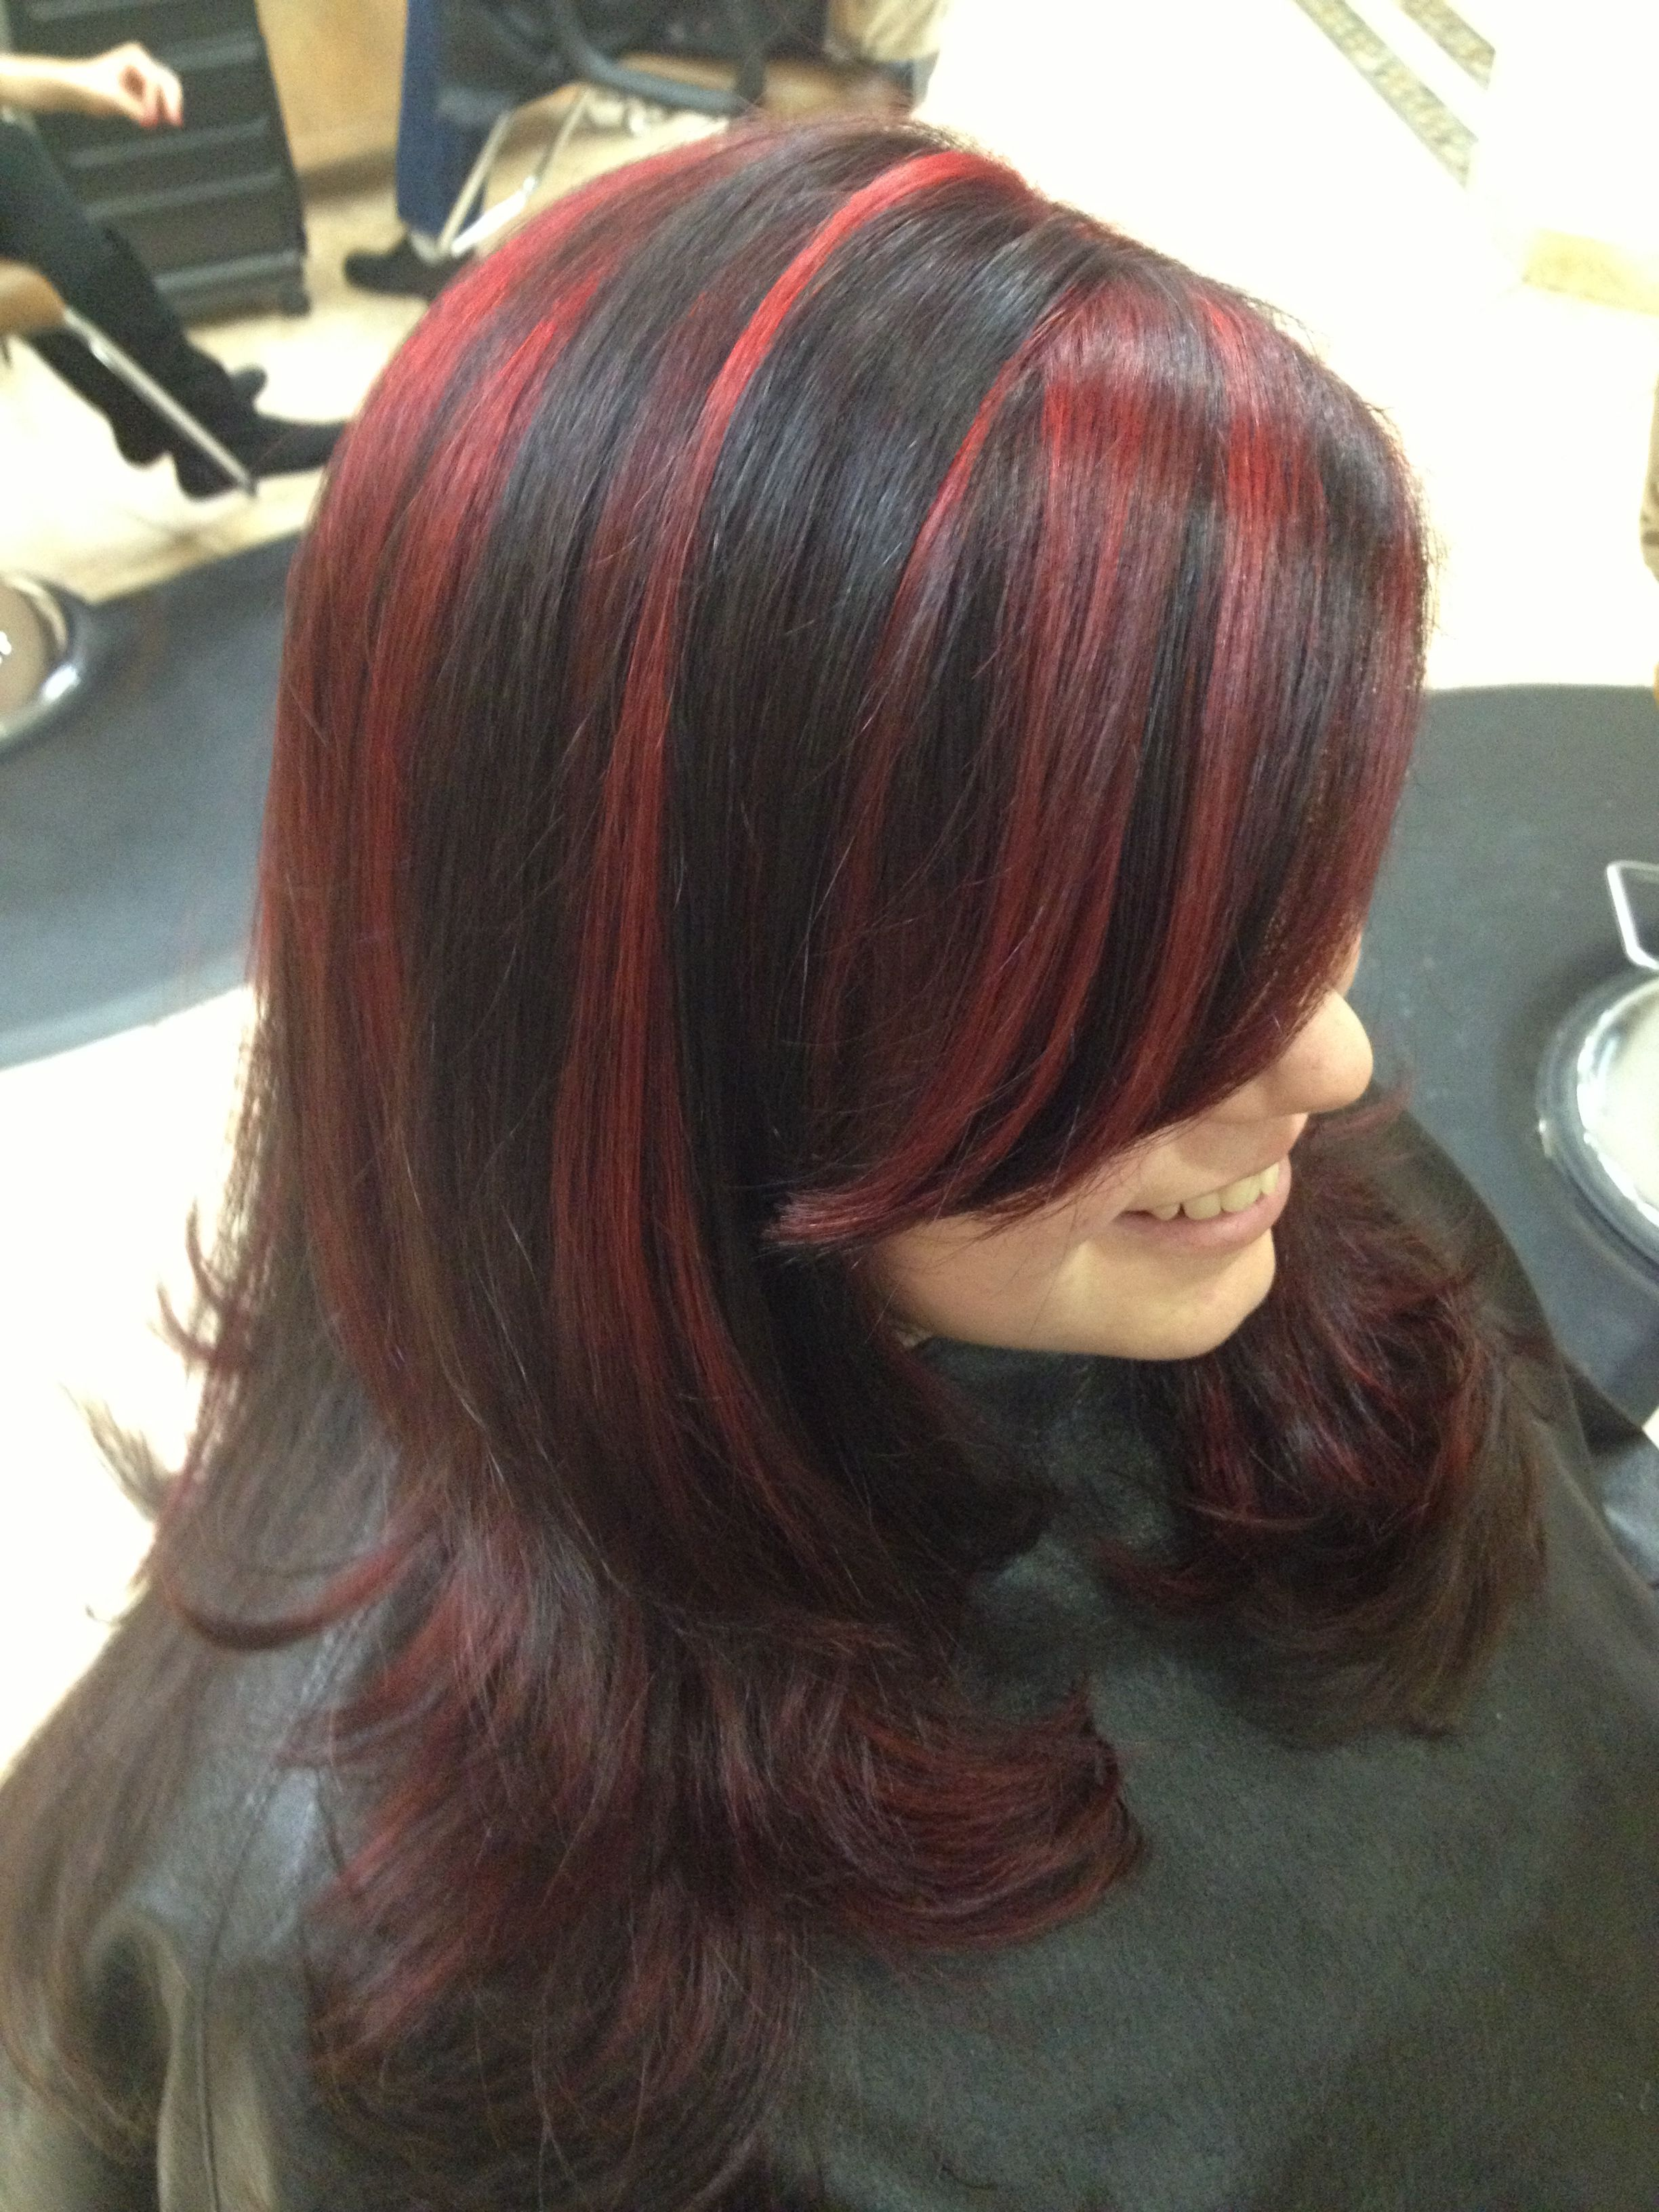 Fun Hair Black With Bold Red Highlights By Joanna Black